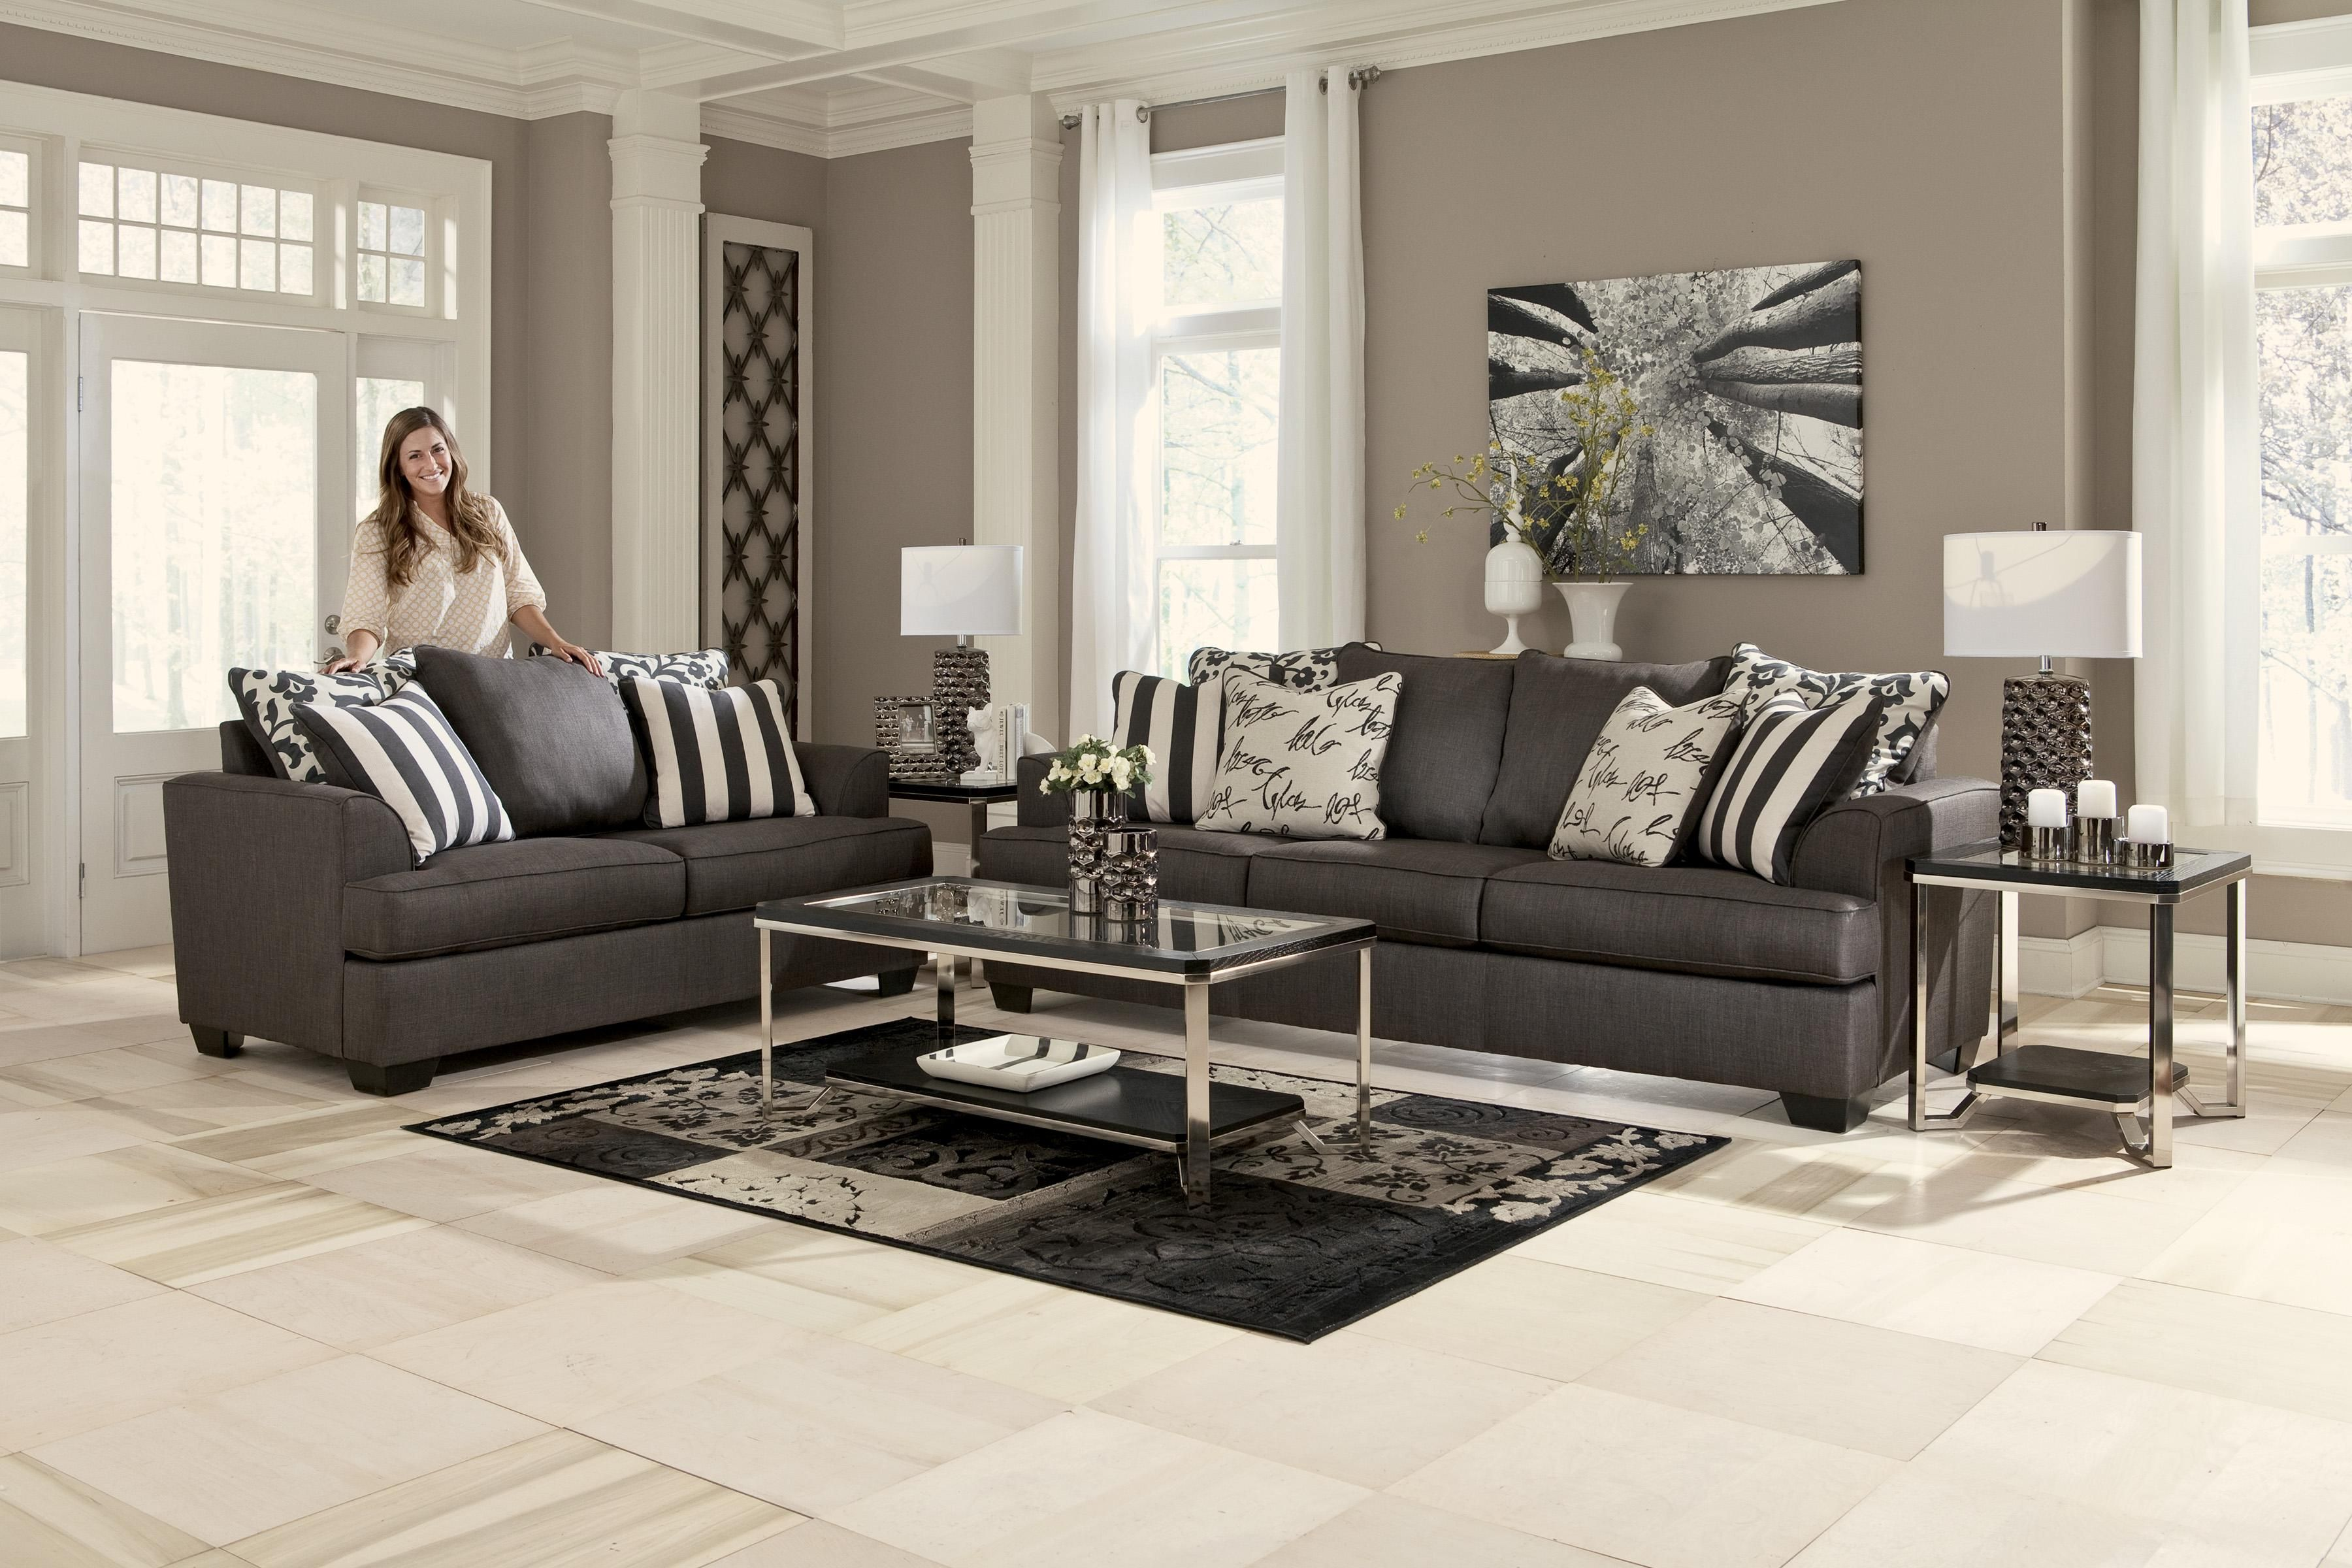 Signature Design By Ashley Central Park Loveseat With Scatterback Pillows And Plush Coil Seat Cushions Ro Furniture New England Furniture Wholesale Furniture #rotmans #living #room #sets